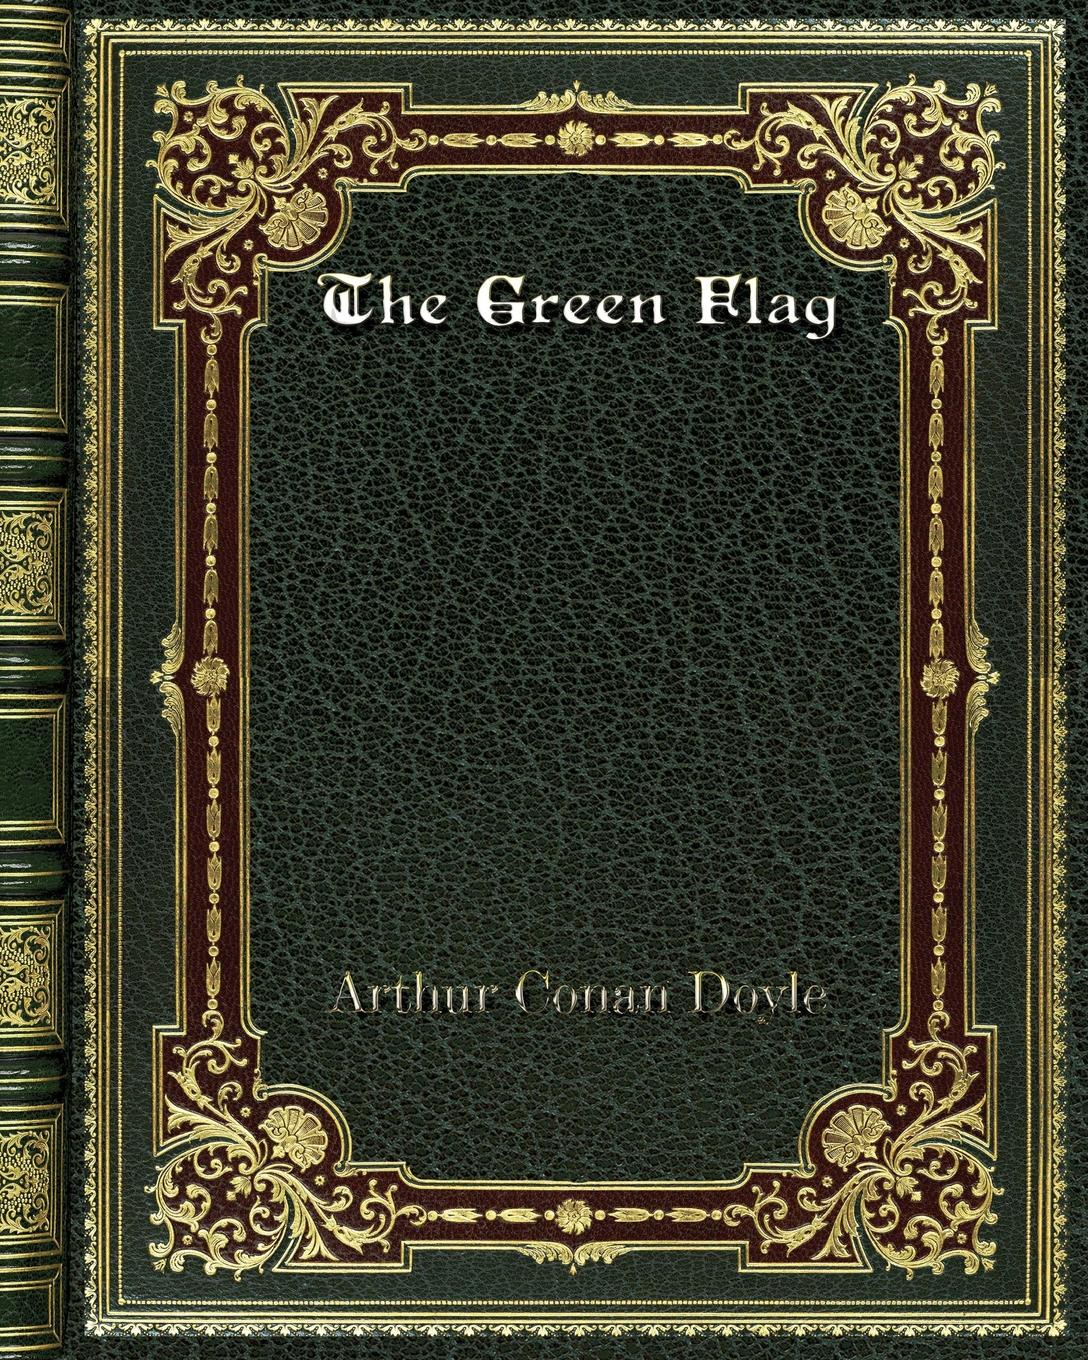 купить Arthur Conan Doyle The Green Flag в интернет-магазине